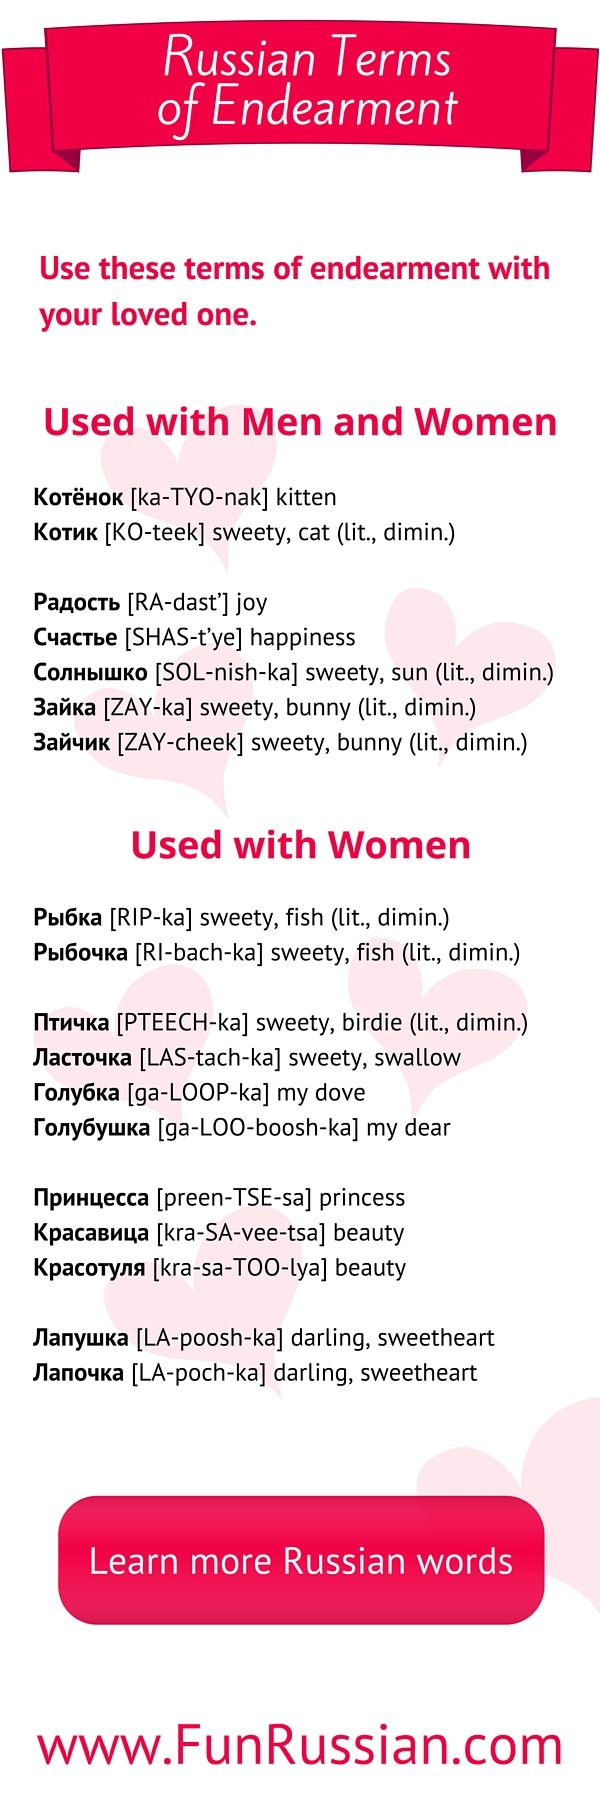 Affectionate Russian Phrases: Tender words in Russian